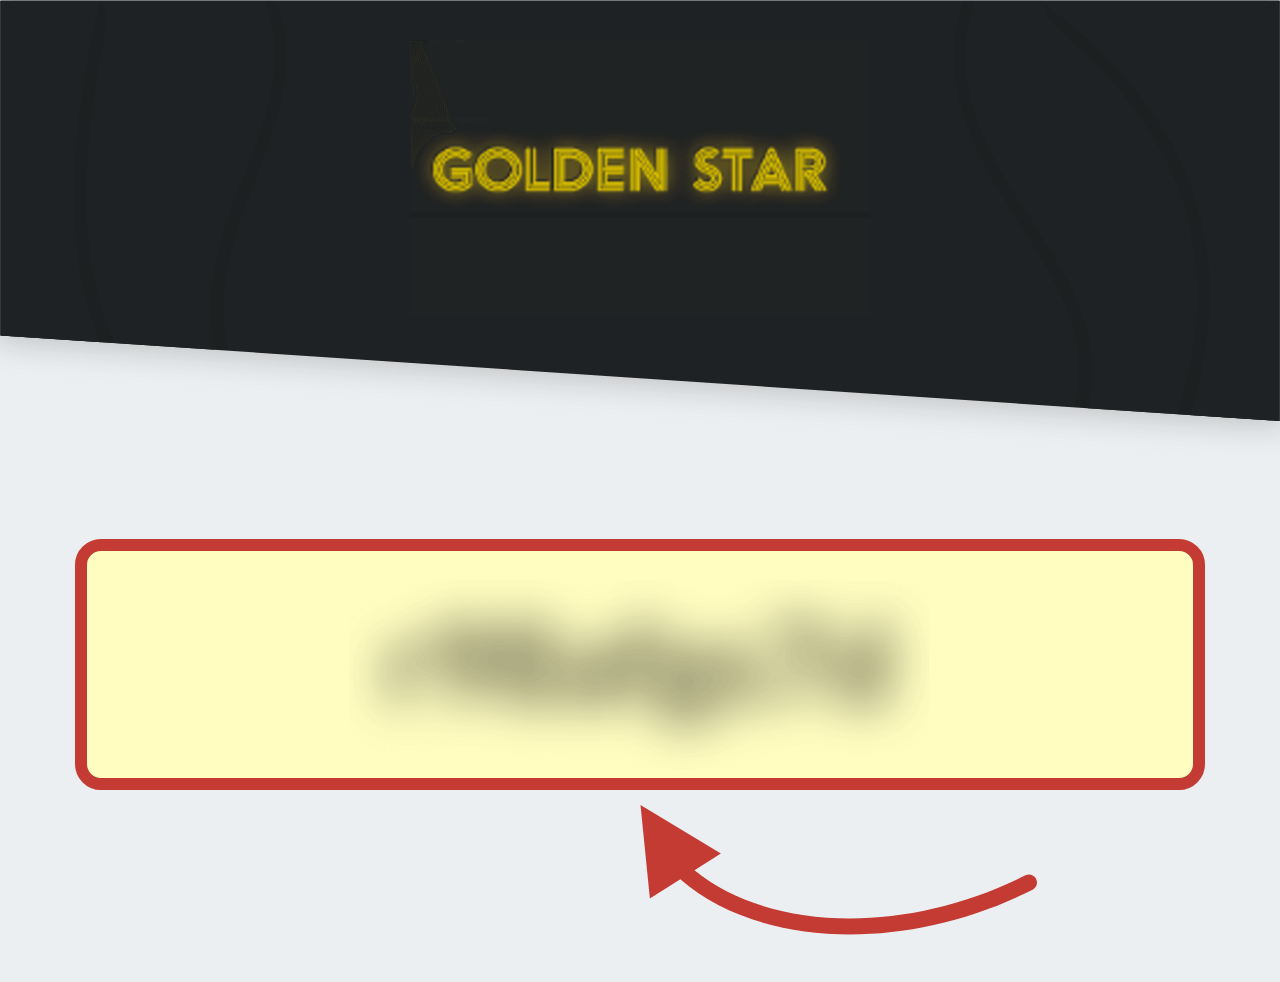 Golden Star Casino Bonus Code